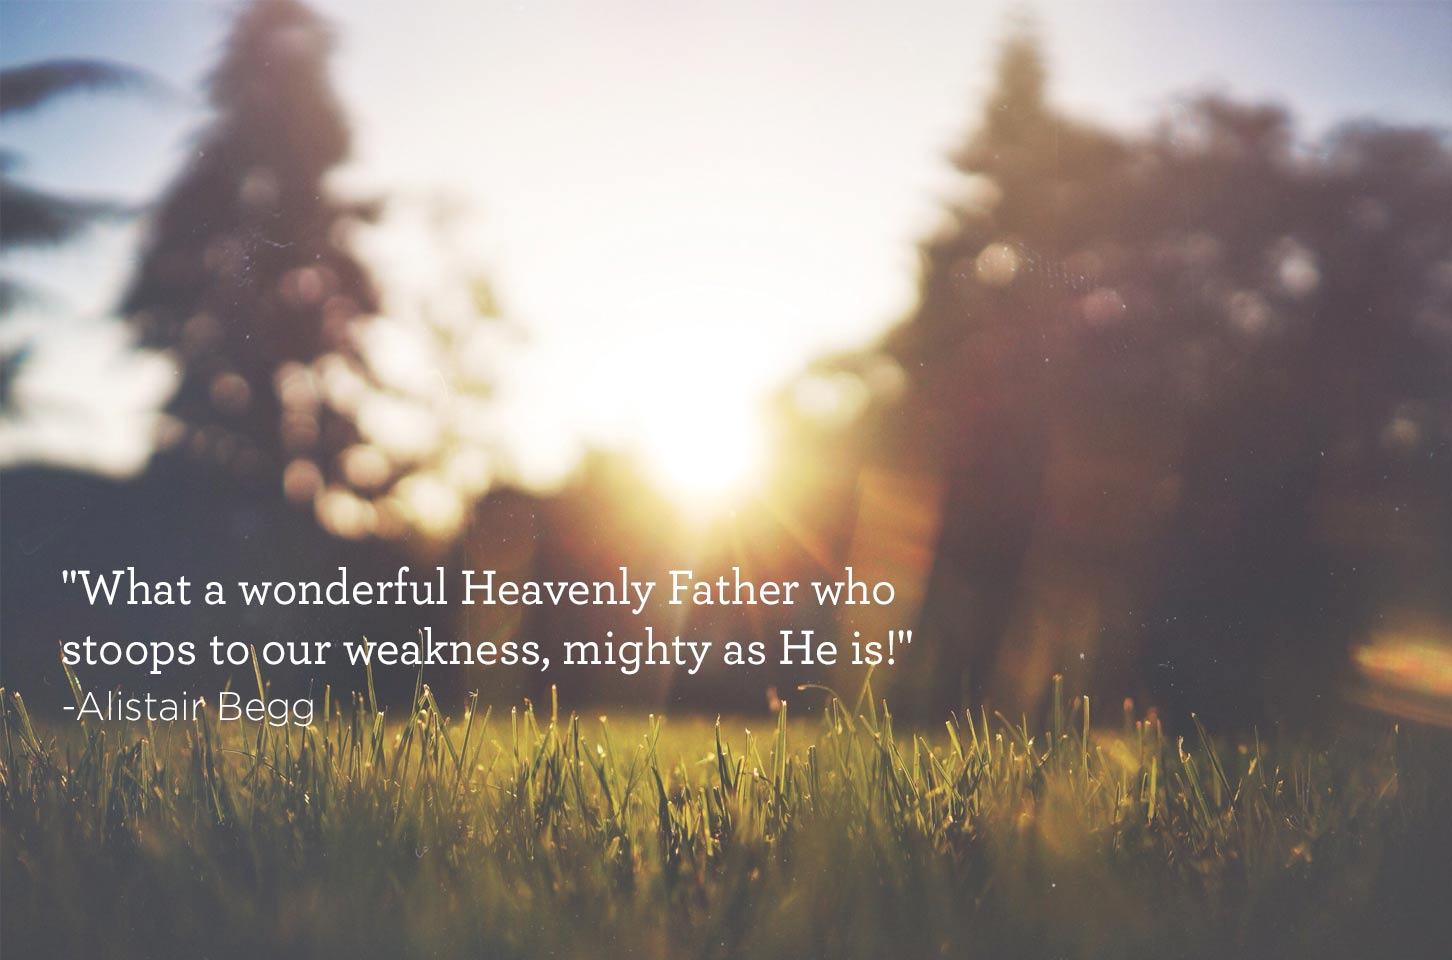 thumbnail image for A Wonderful Heavenly Father